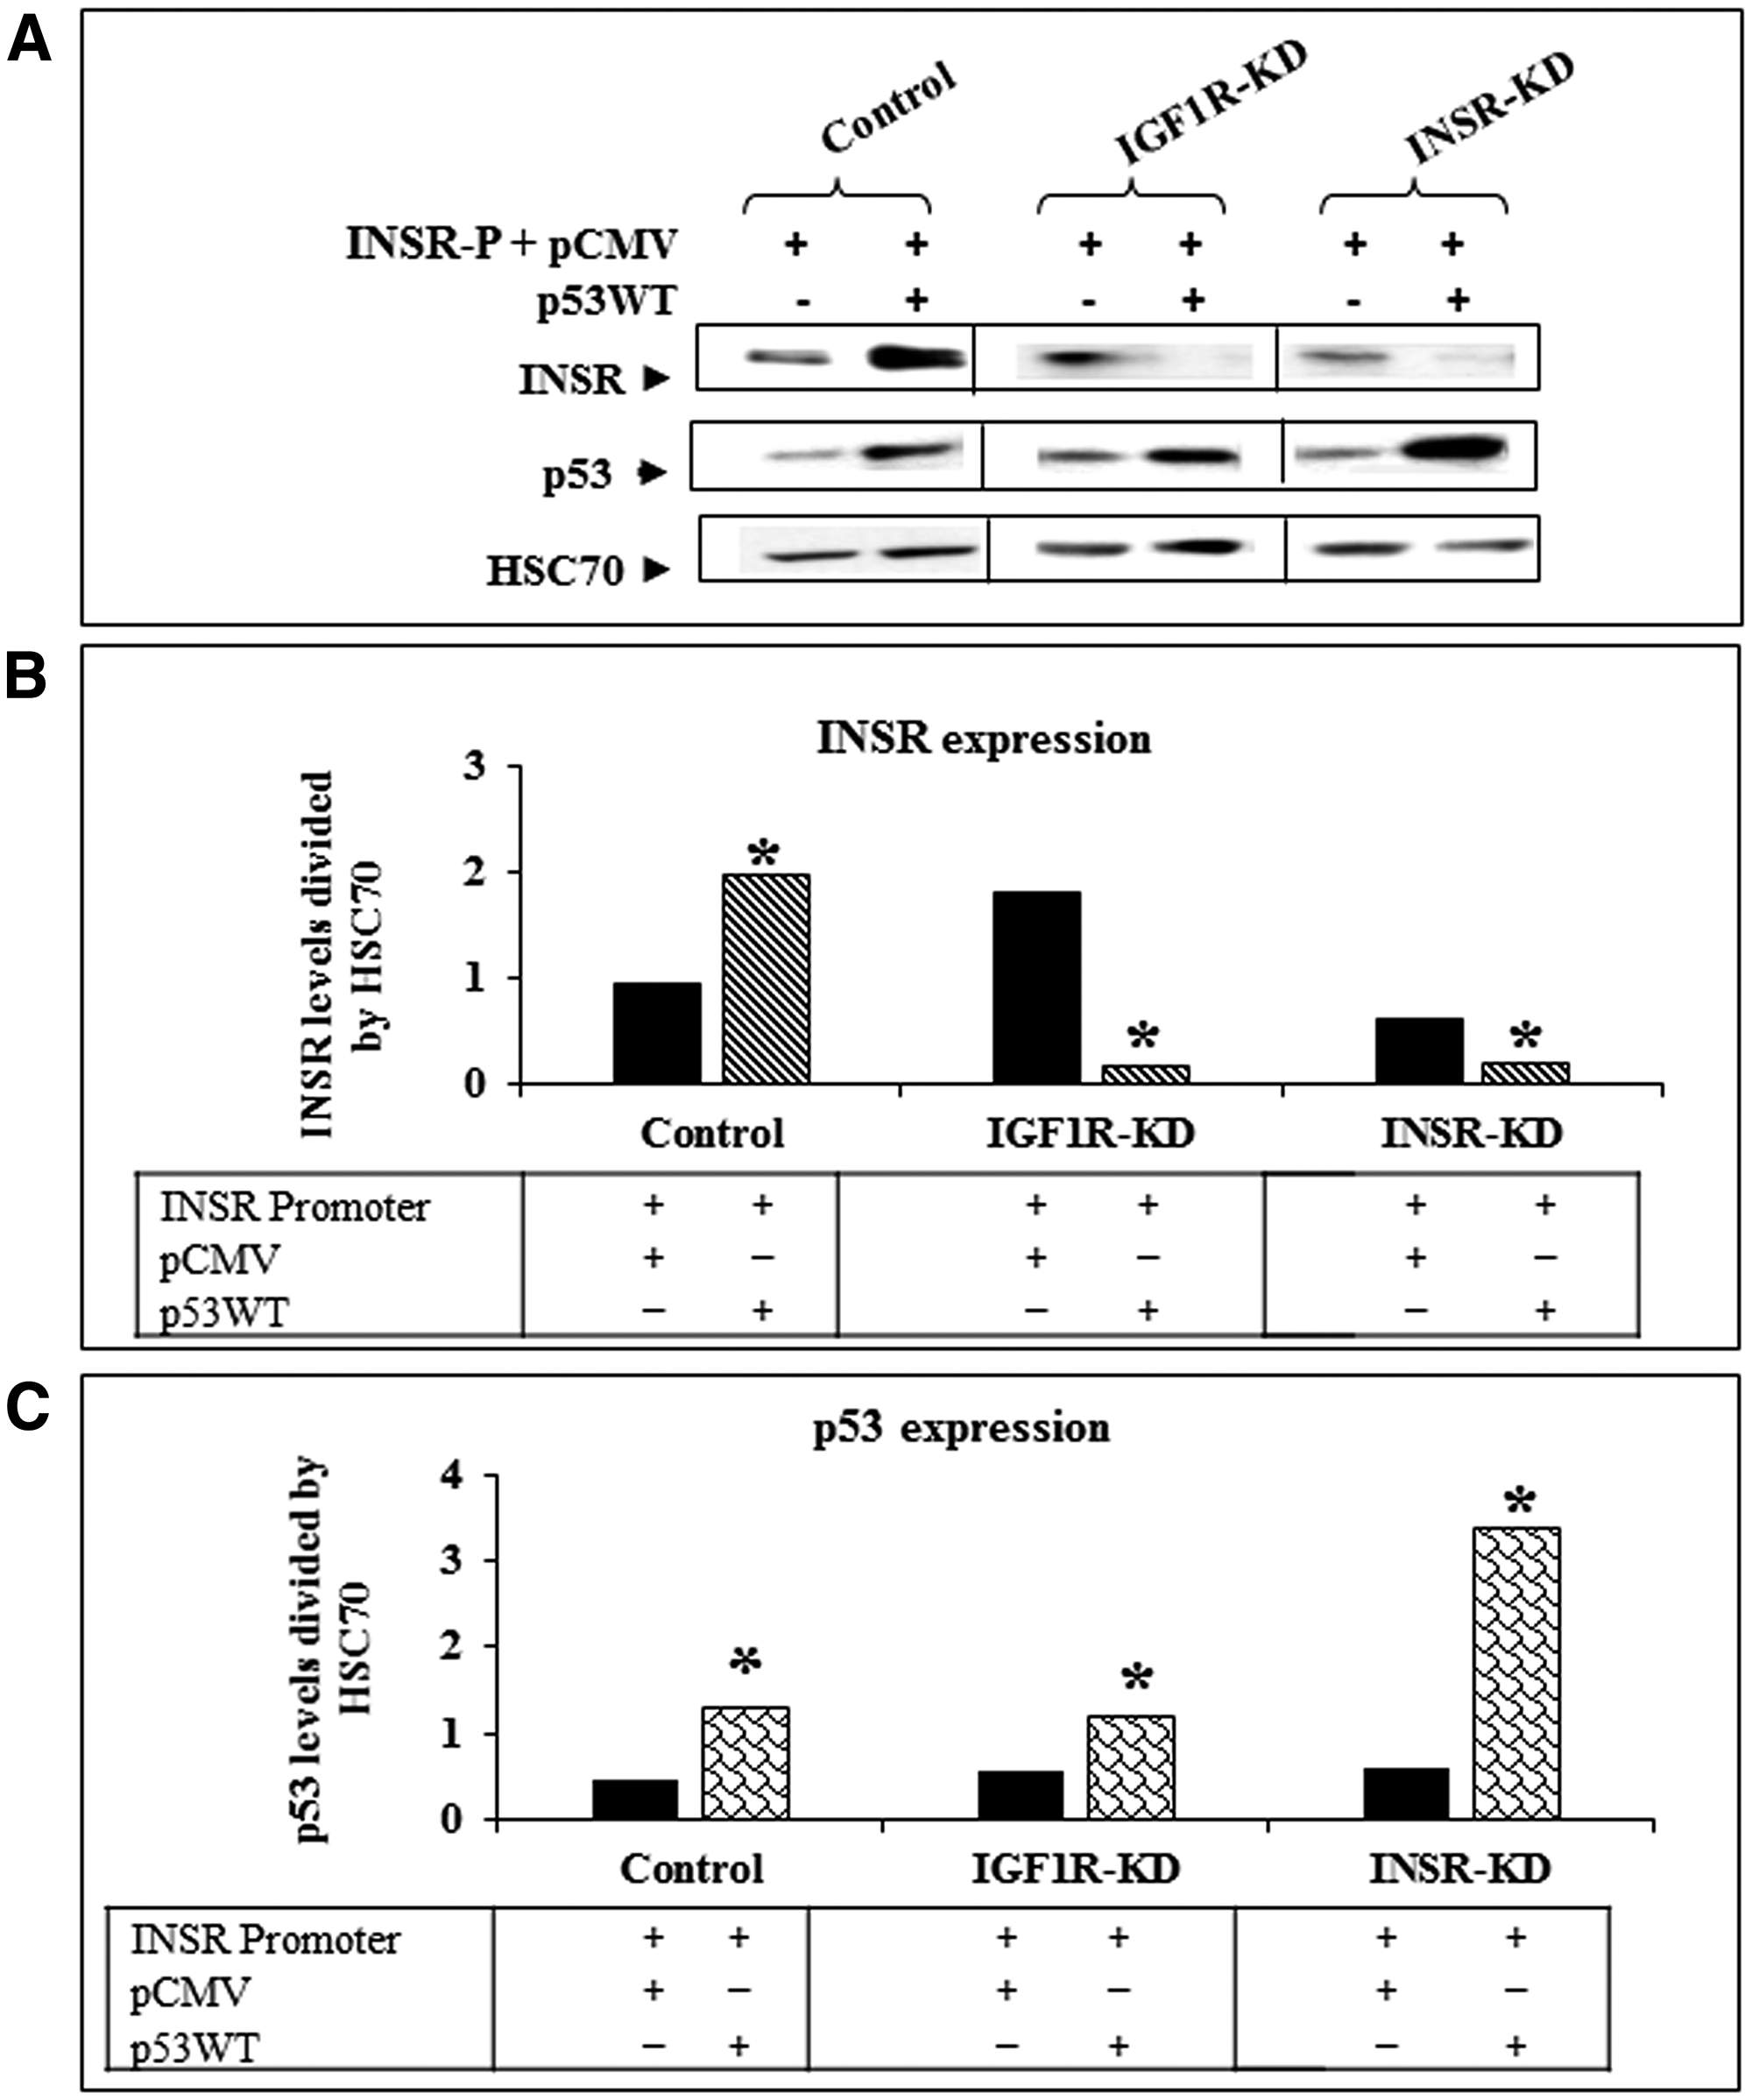 Effect of wild-type p53 transfection on INSR protein expression.